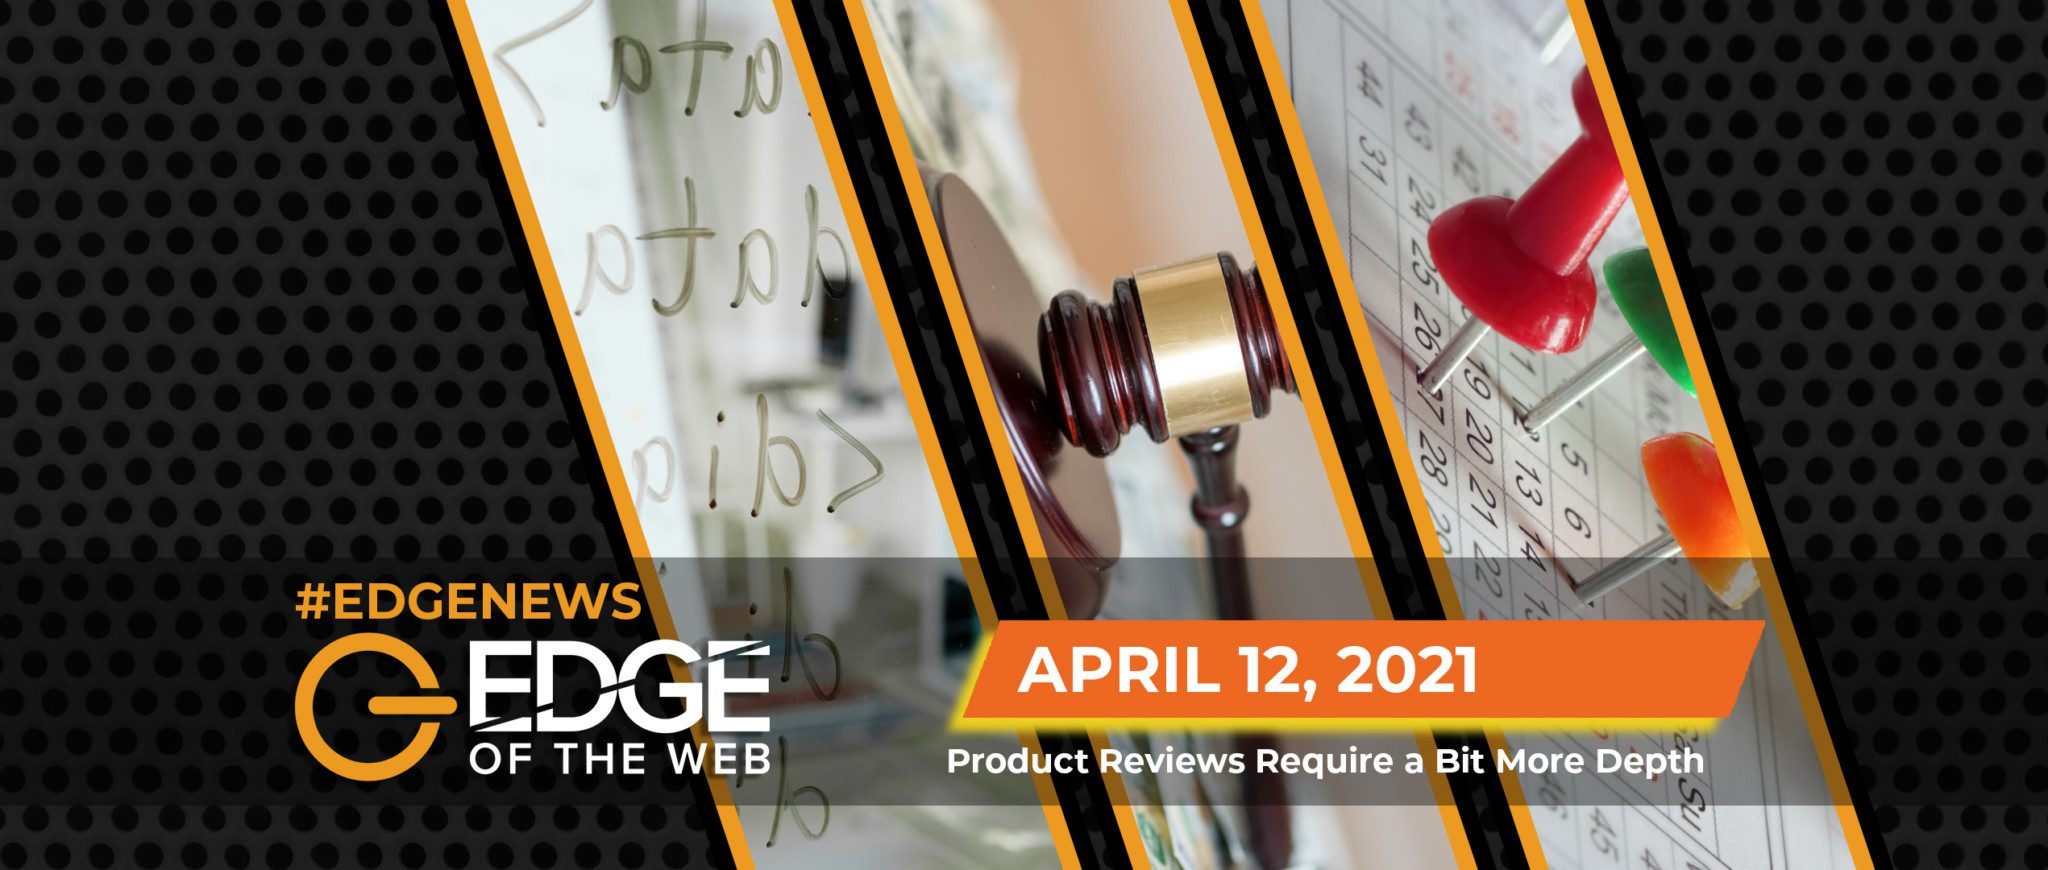 410 | News from the EDGE: Week of April 12, 2021